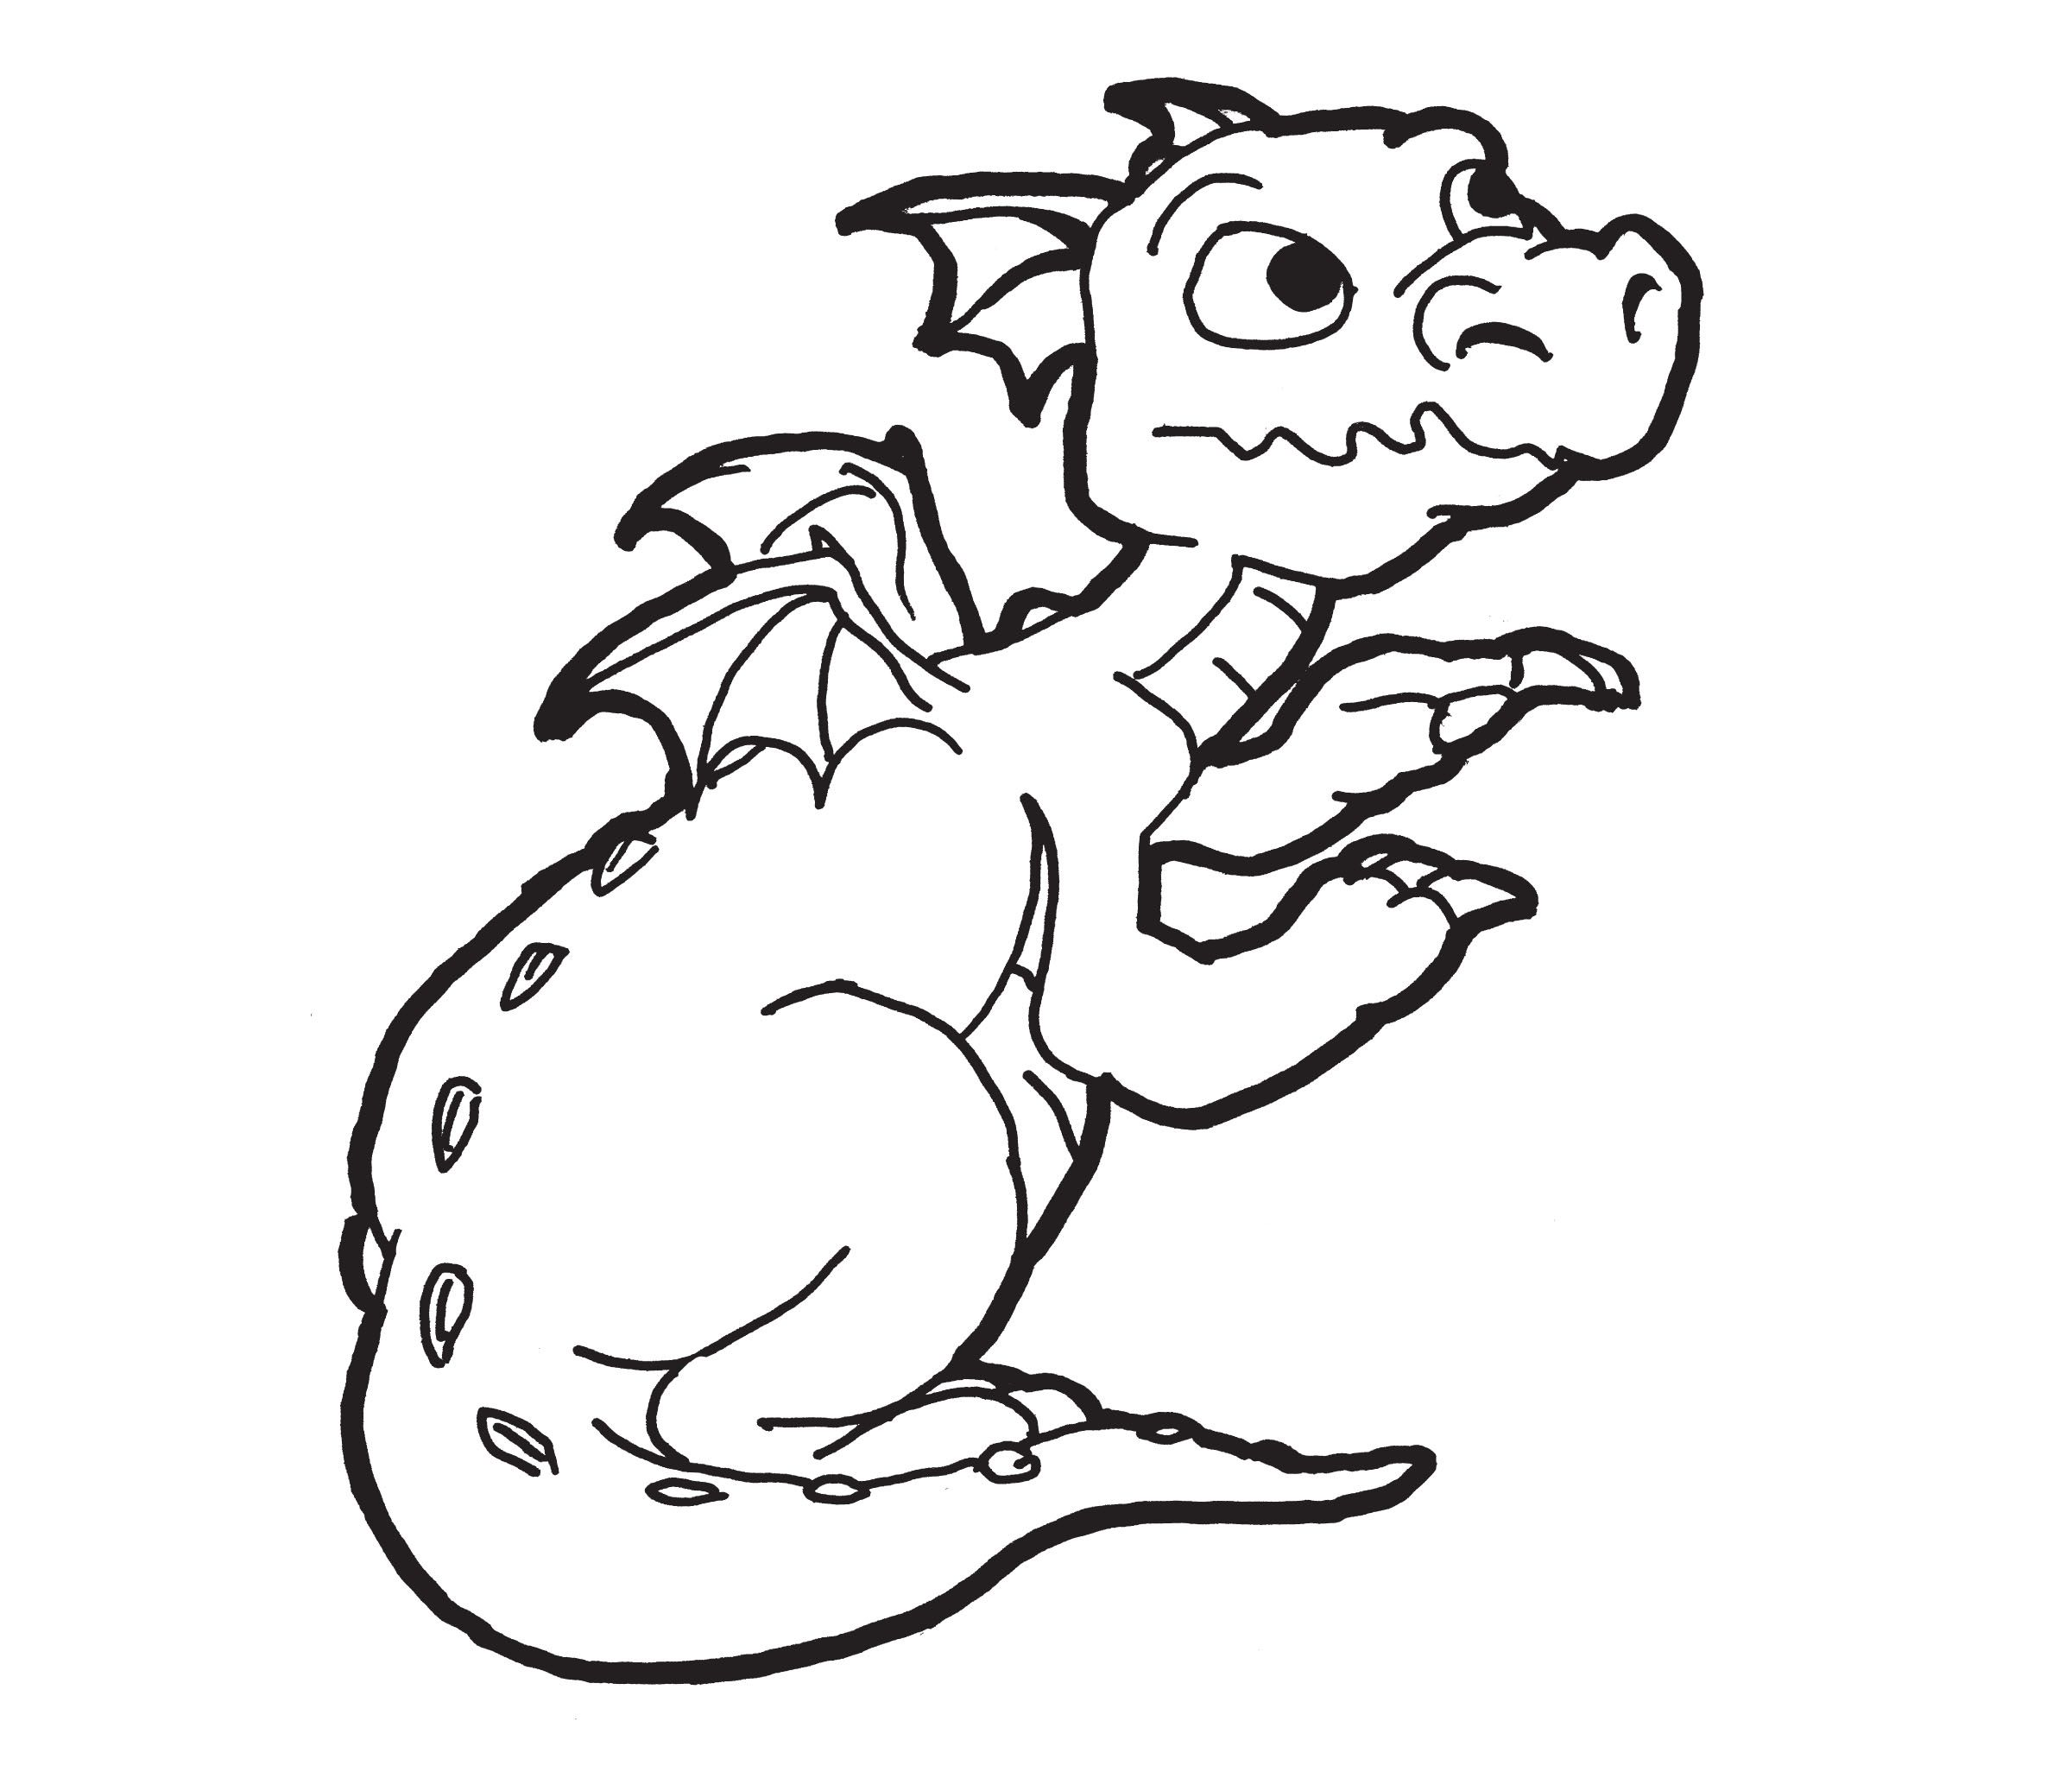 Free Printable Dragon Coloring Pages For Kids | More VBS ...